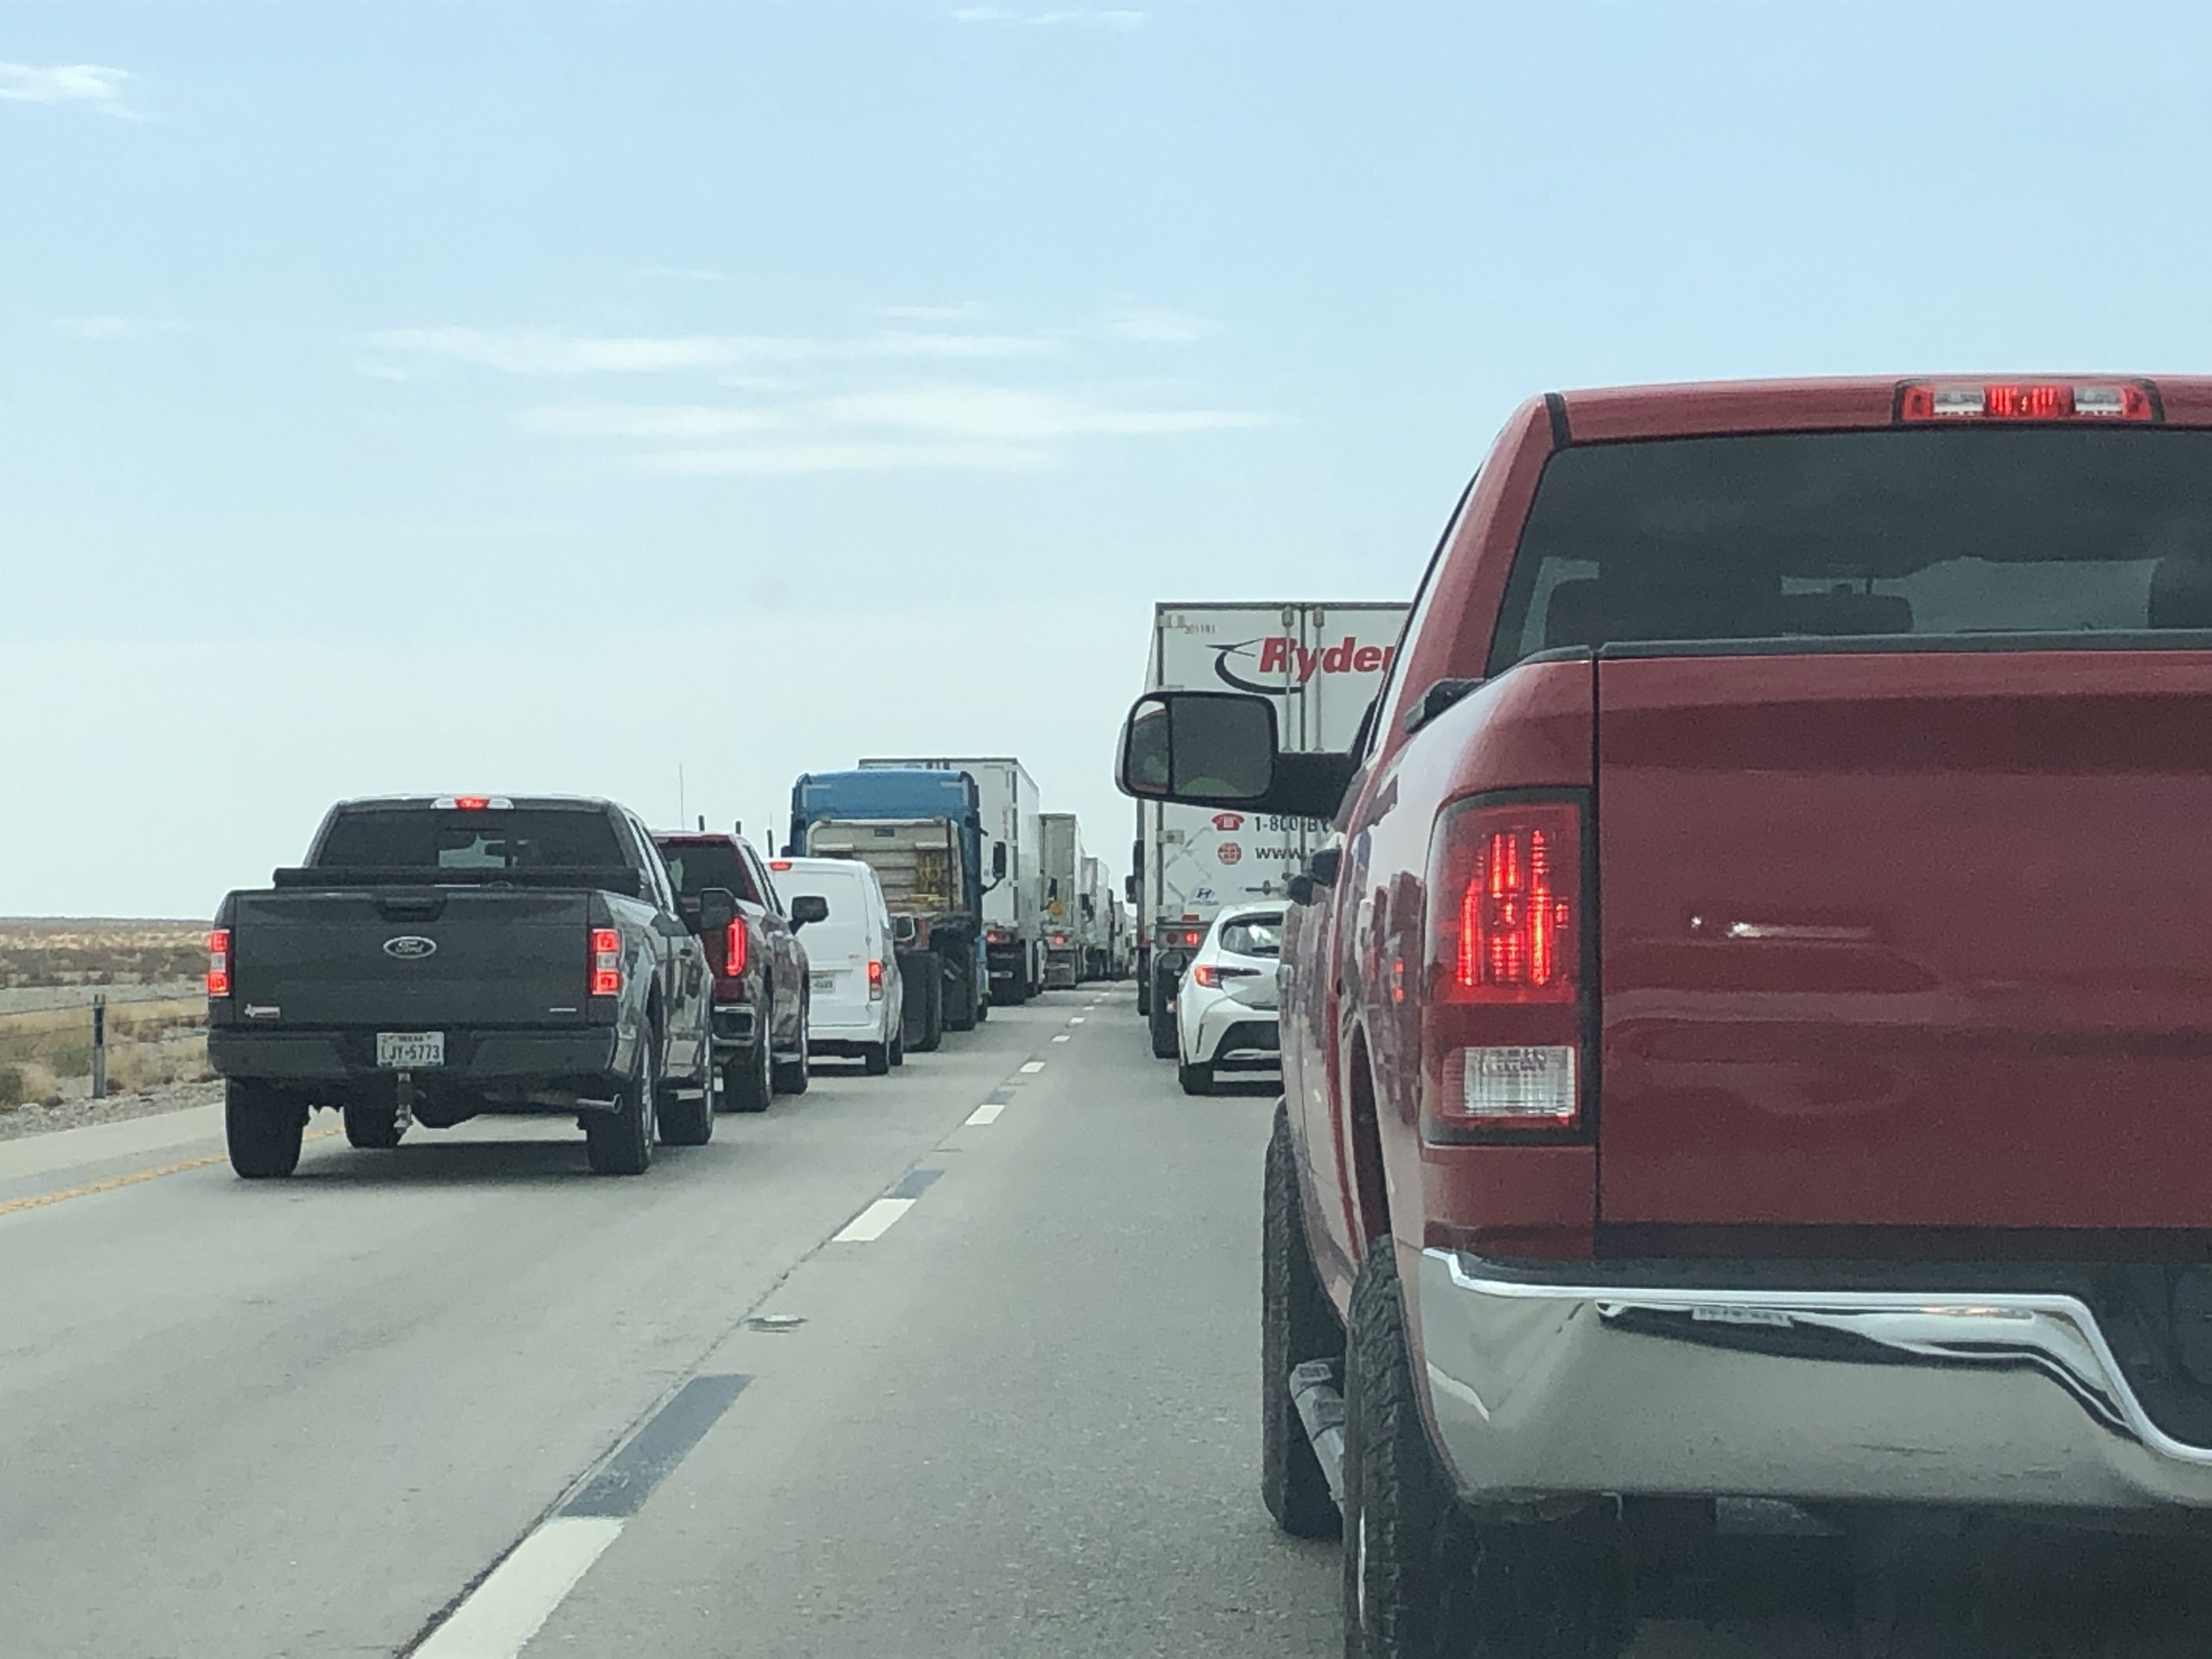 Traffic backed up along I-10 near Tornillo after two incidents involving trucks shut down the highway.